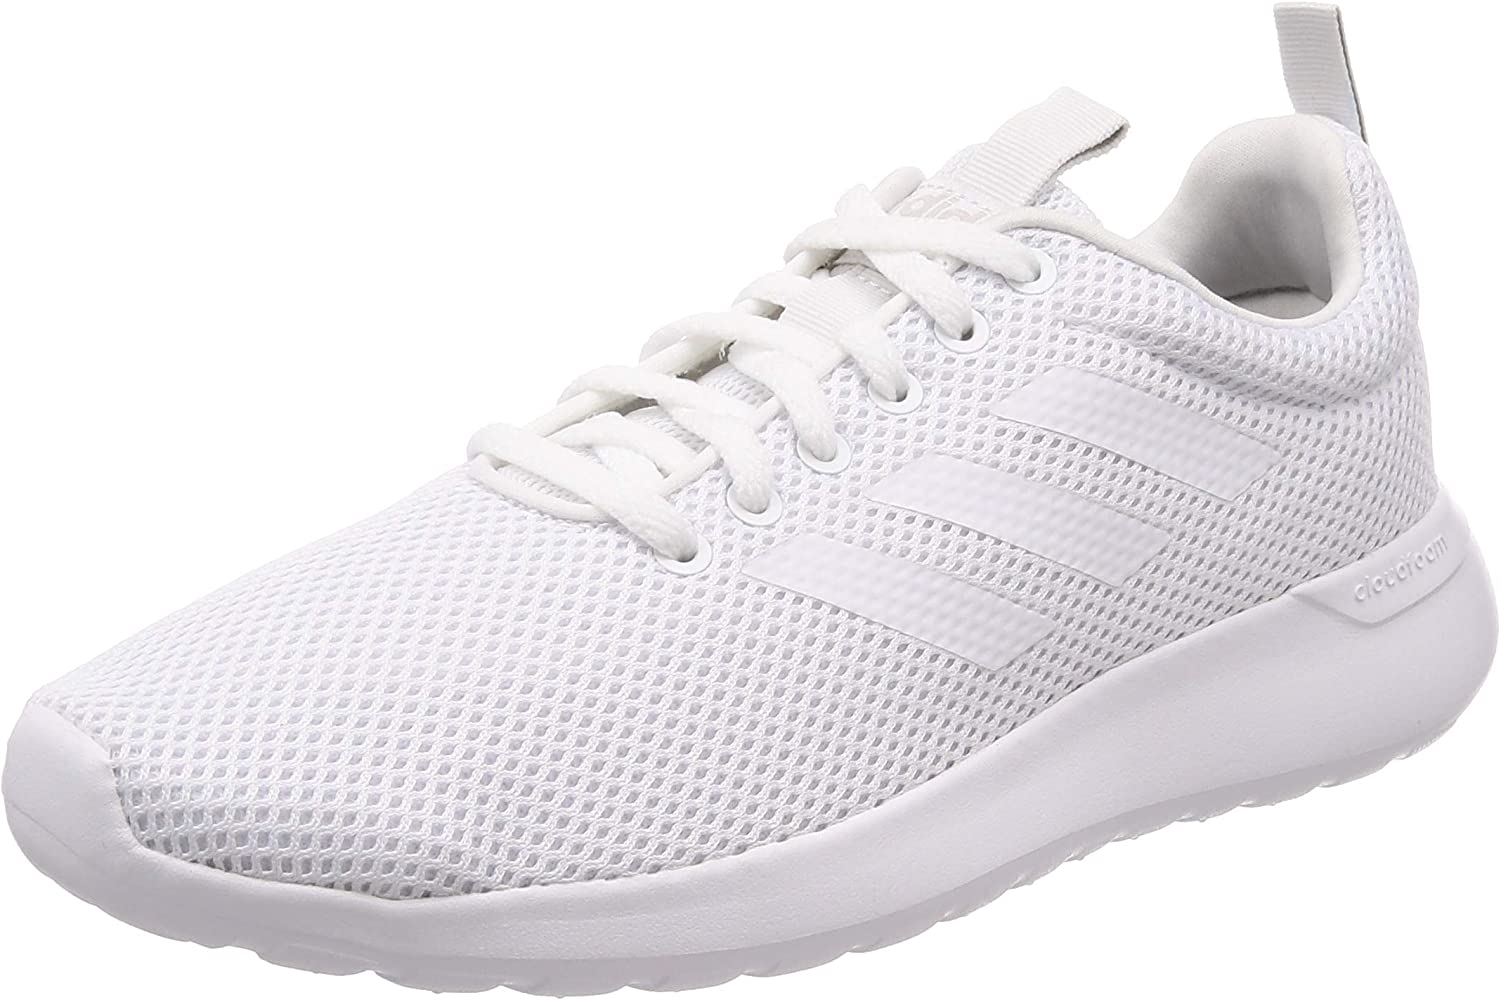 Men Running Shoes Essentials Lite Racer CLN Trainers New B96568 Gym New (US 7)